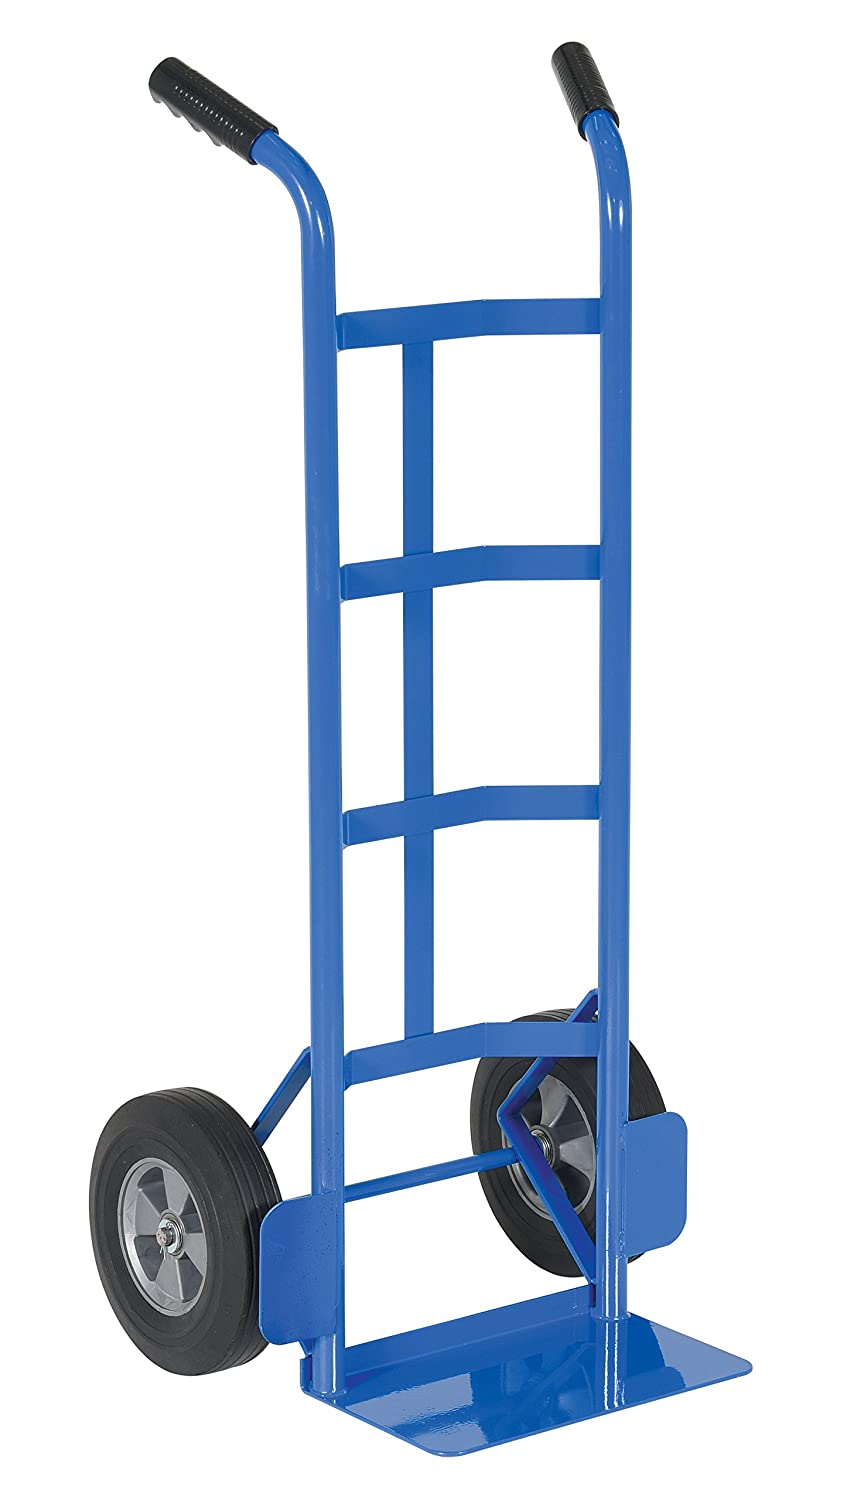 Vestil DHHT-500S-HR Steel Hand Truck with Dual Handle,Hard Rubber Wheels, 500 lbs Load Capacity, 44-1/2